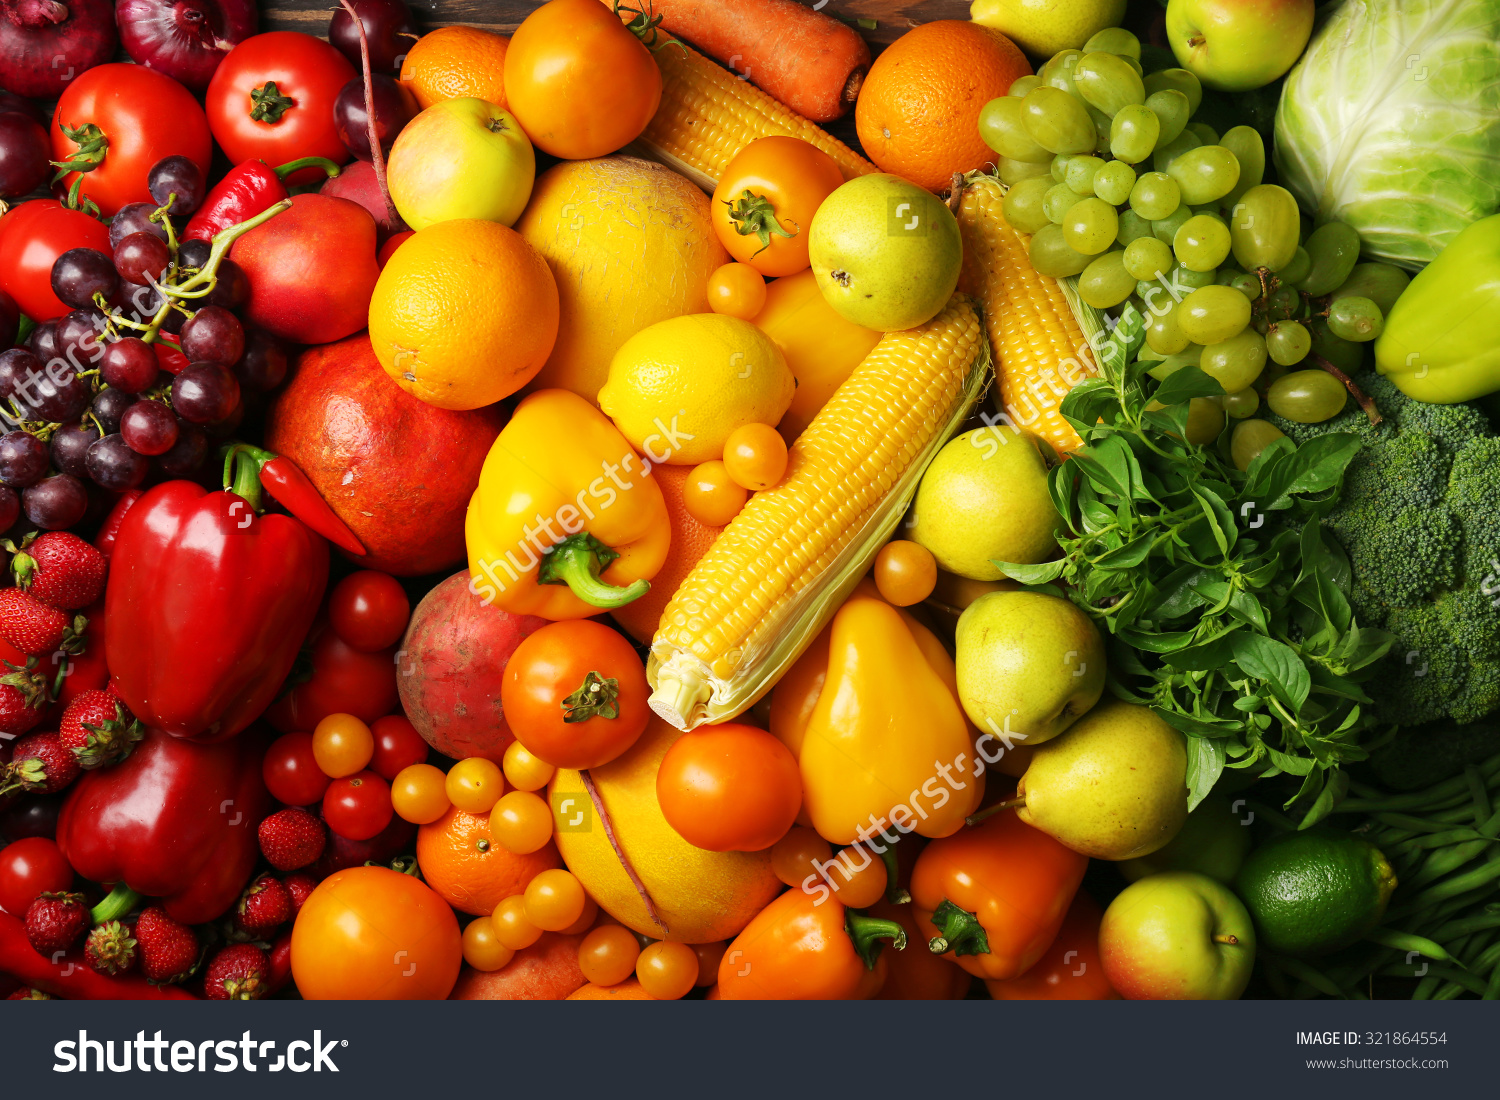 Colorful Fruits And Vegetables Background Stock Photo 321864554 1500x1100